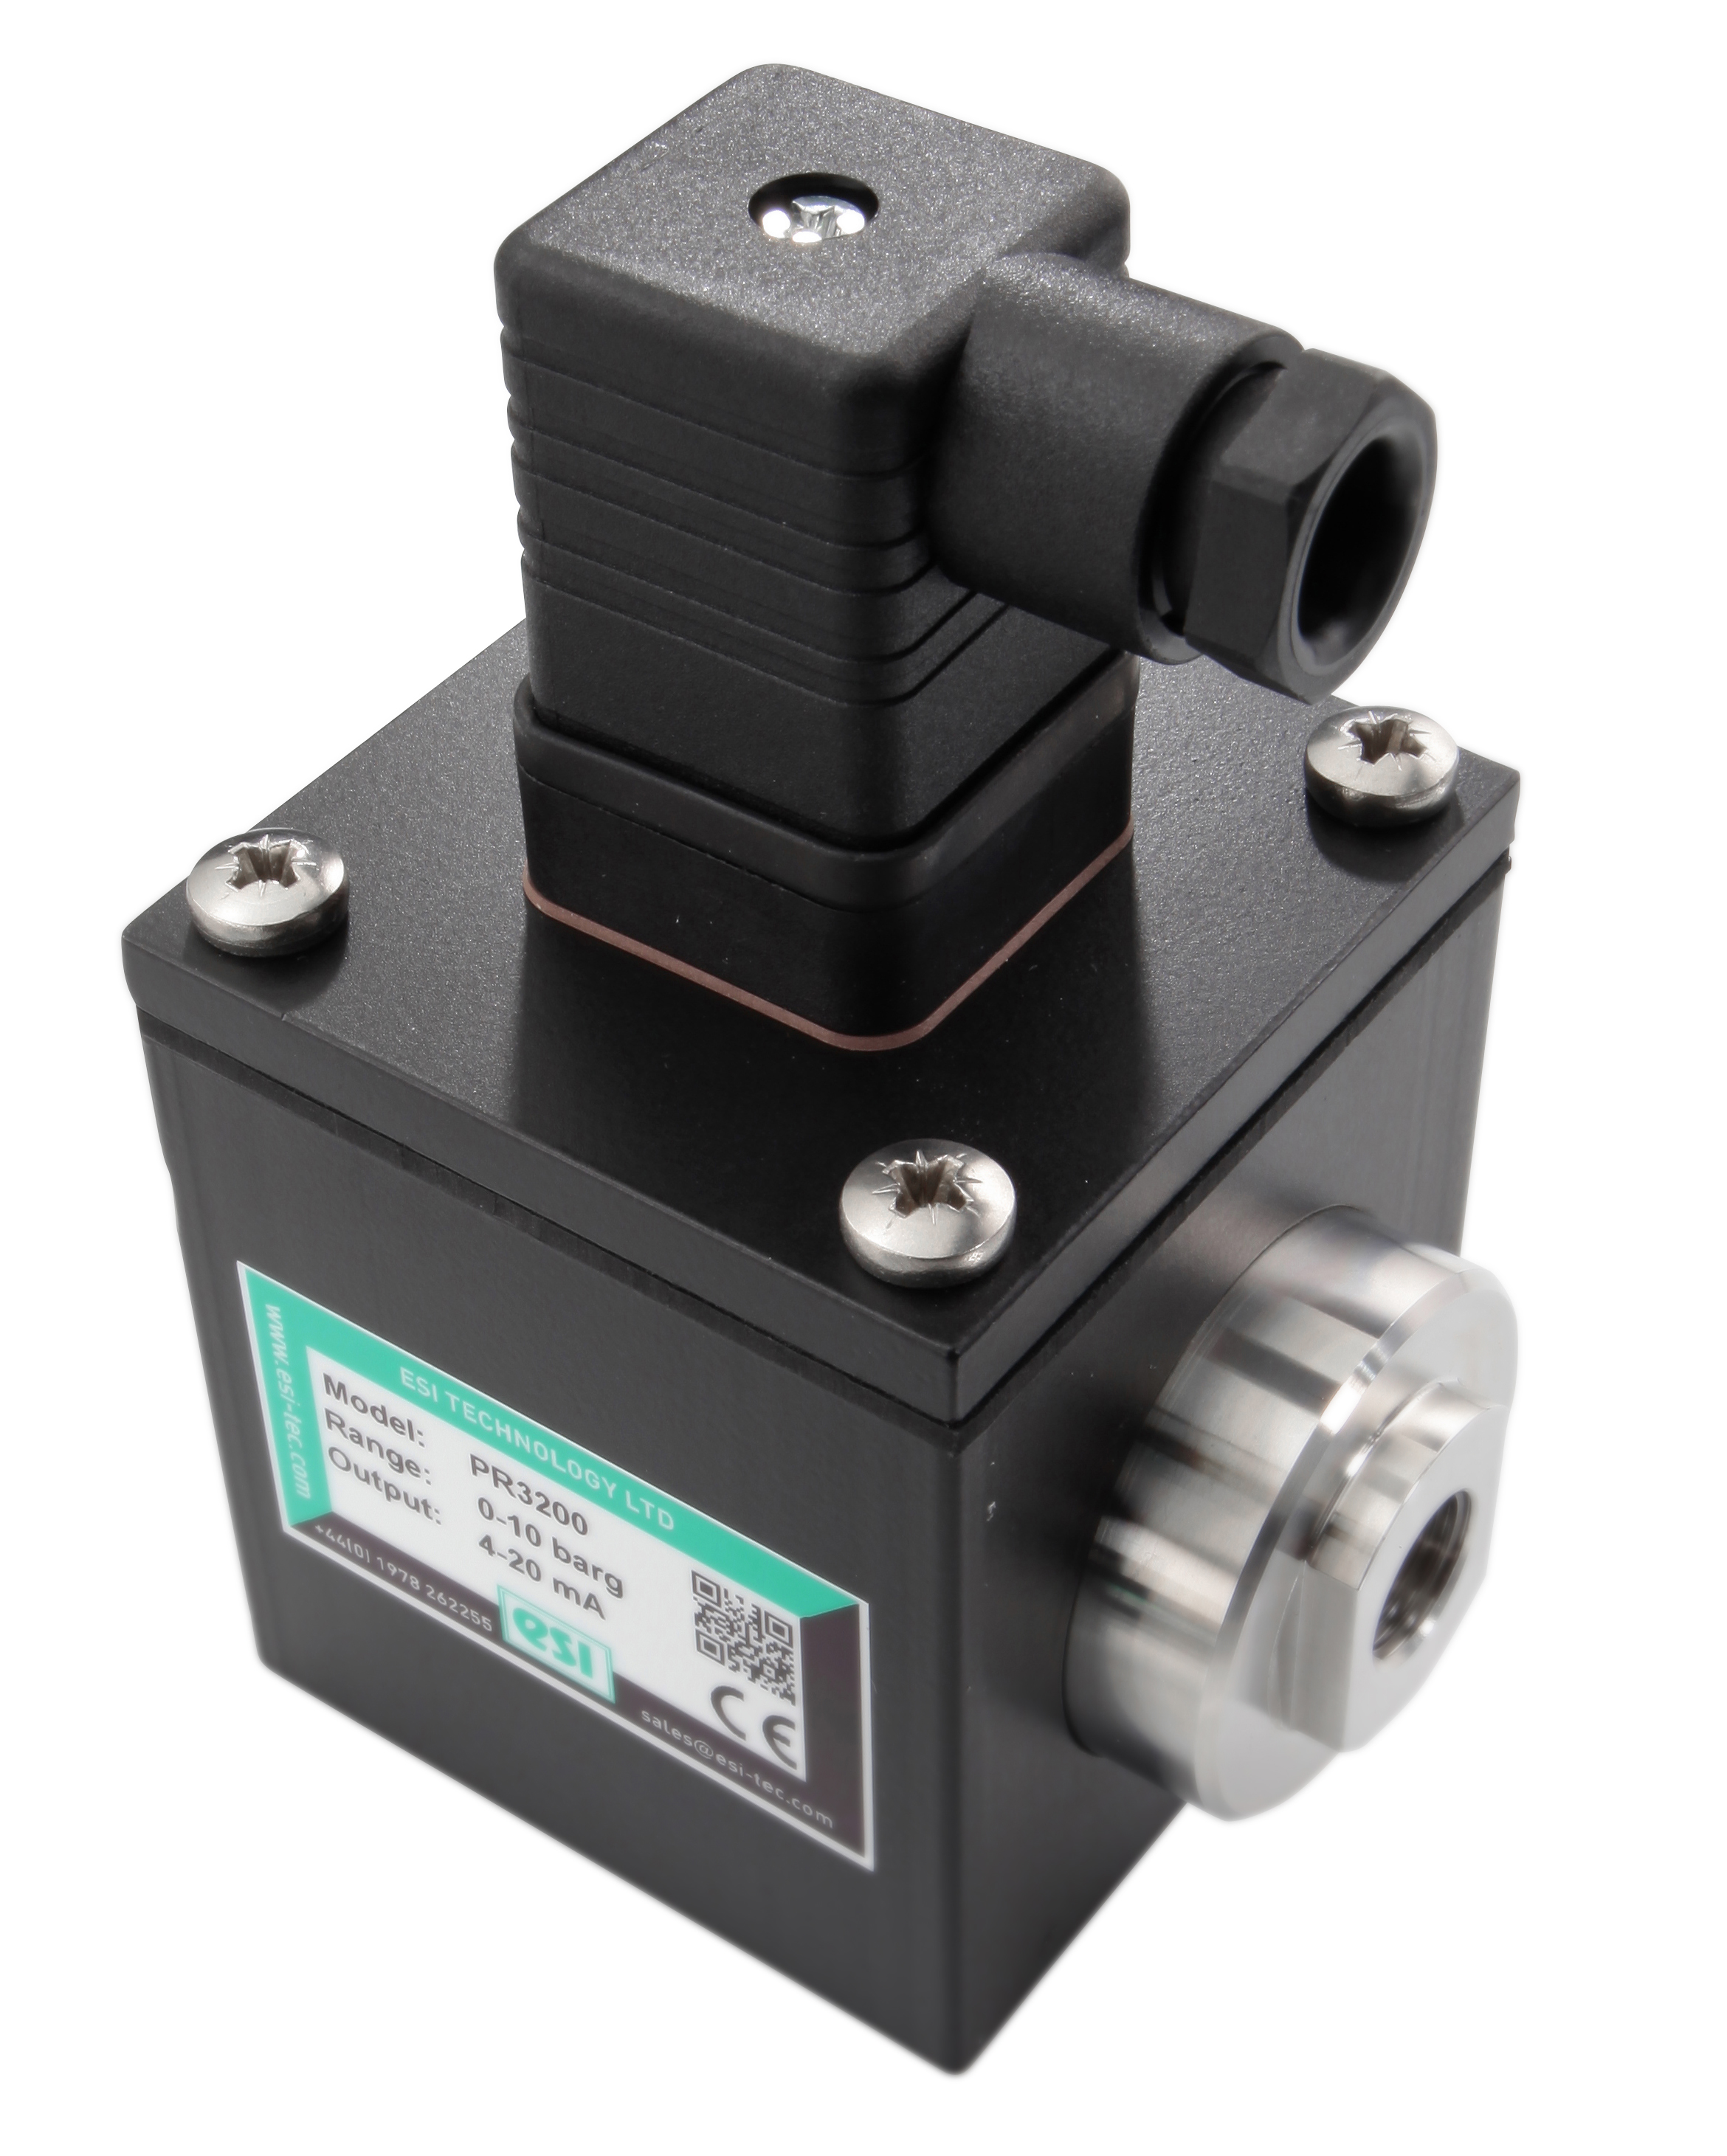 ESI PR3200 Differential Pressure Transducer